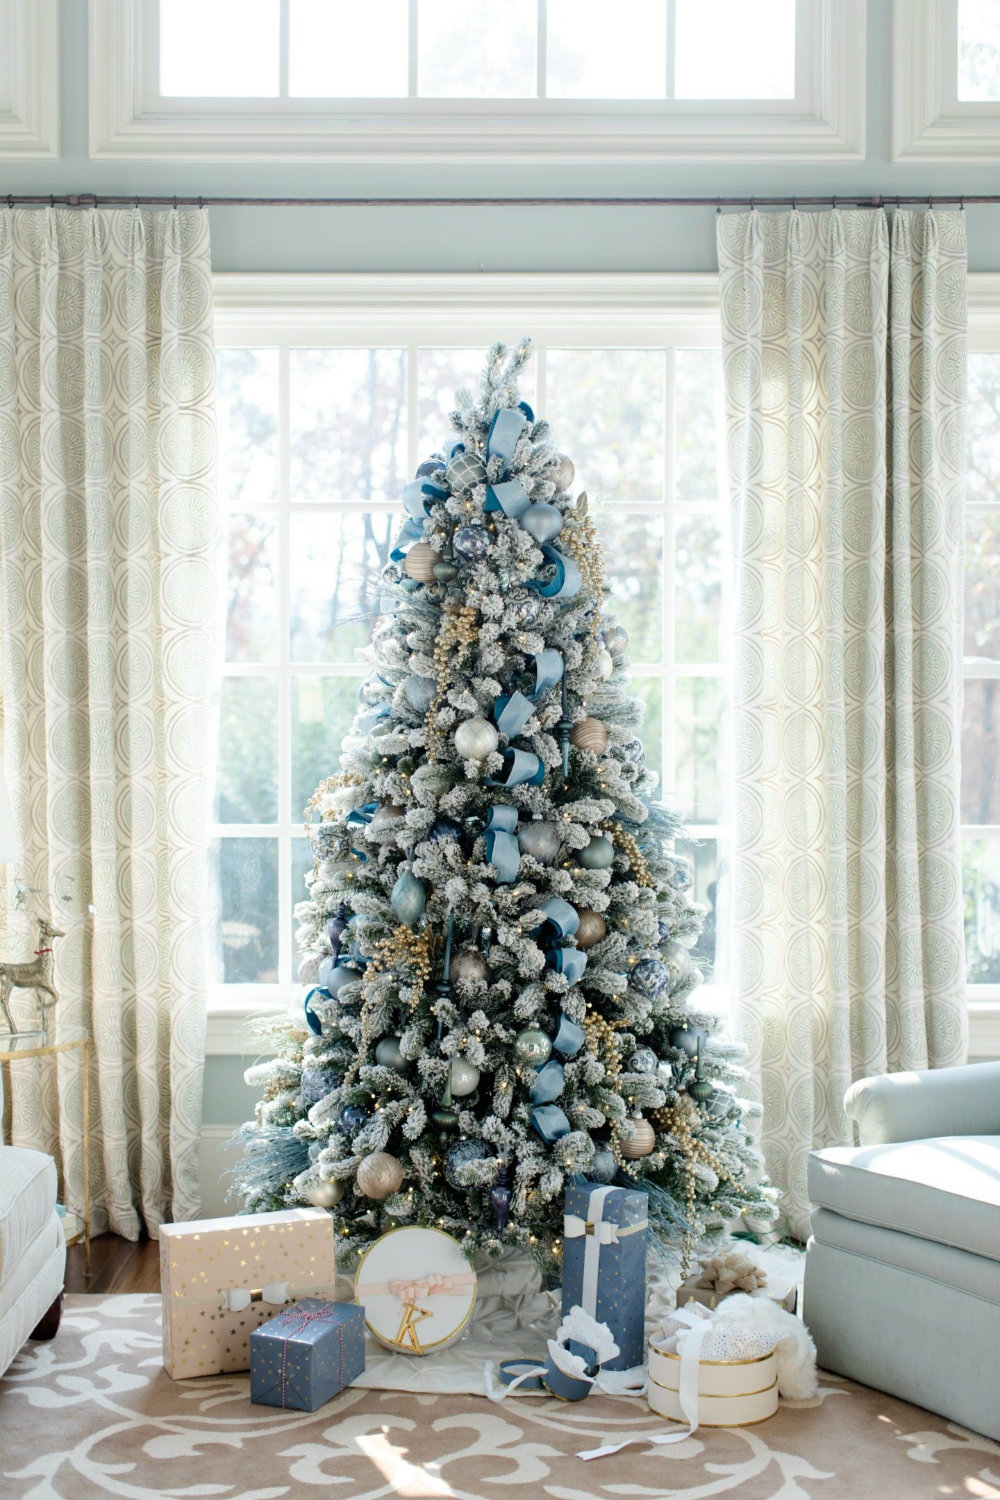 7 Chic Christmas Decorations for The Most Memorable Holiday 04 chic christmas decorations 7 Chic Christmas Decorations for The Most Memorable Holiday 7 Chic Christmas Decorations for The Most Unforgettable Holiday 04